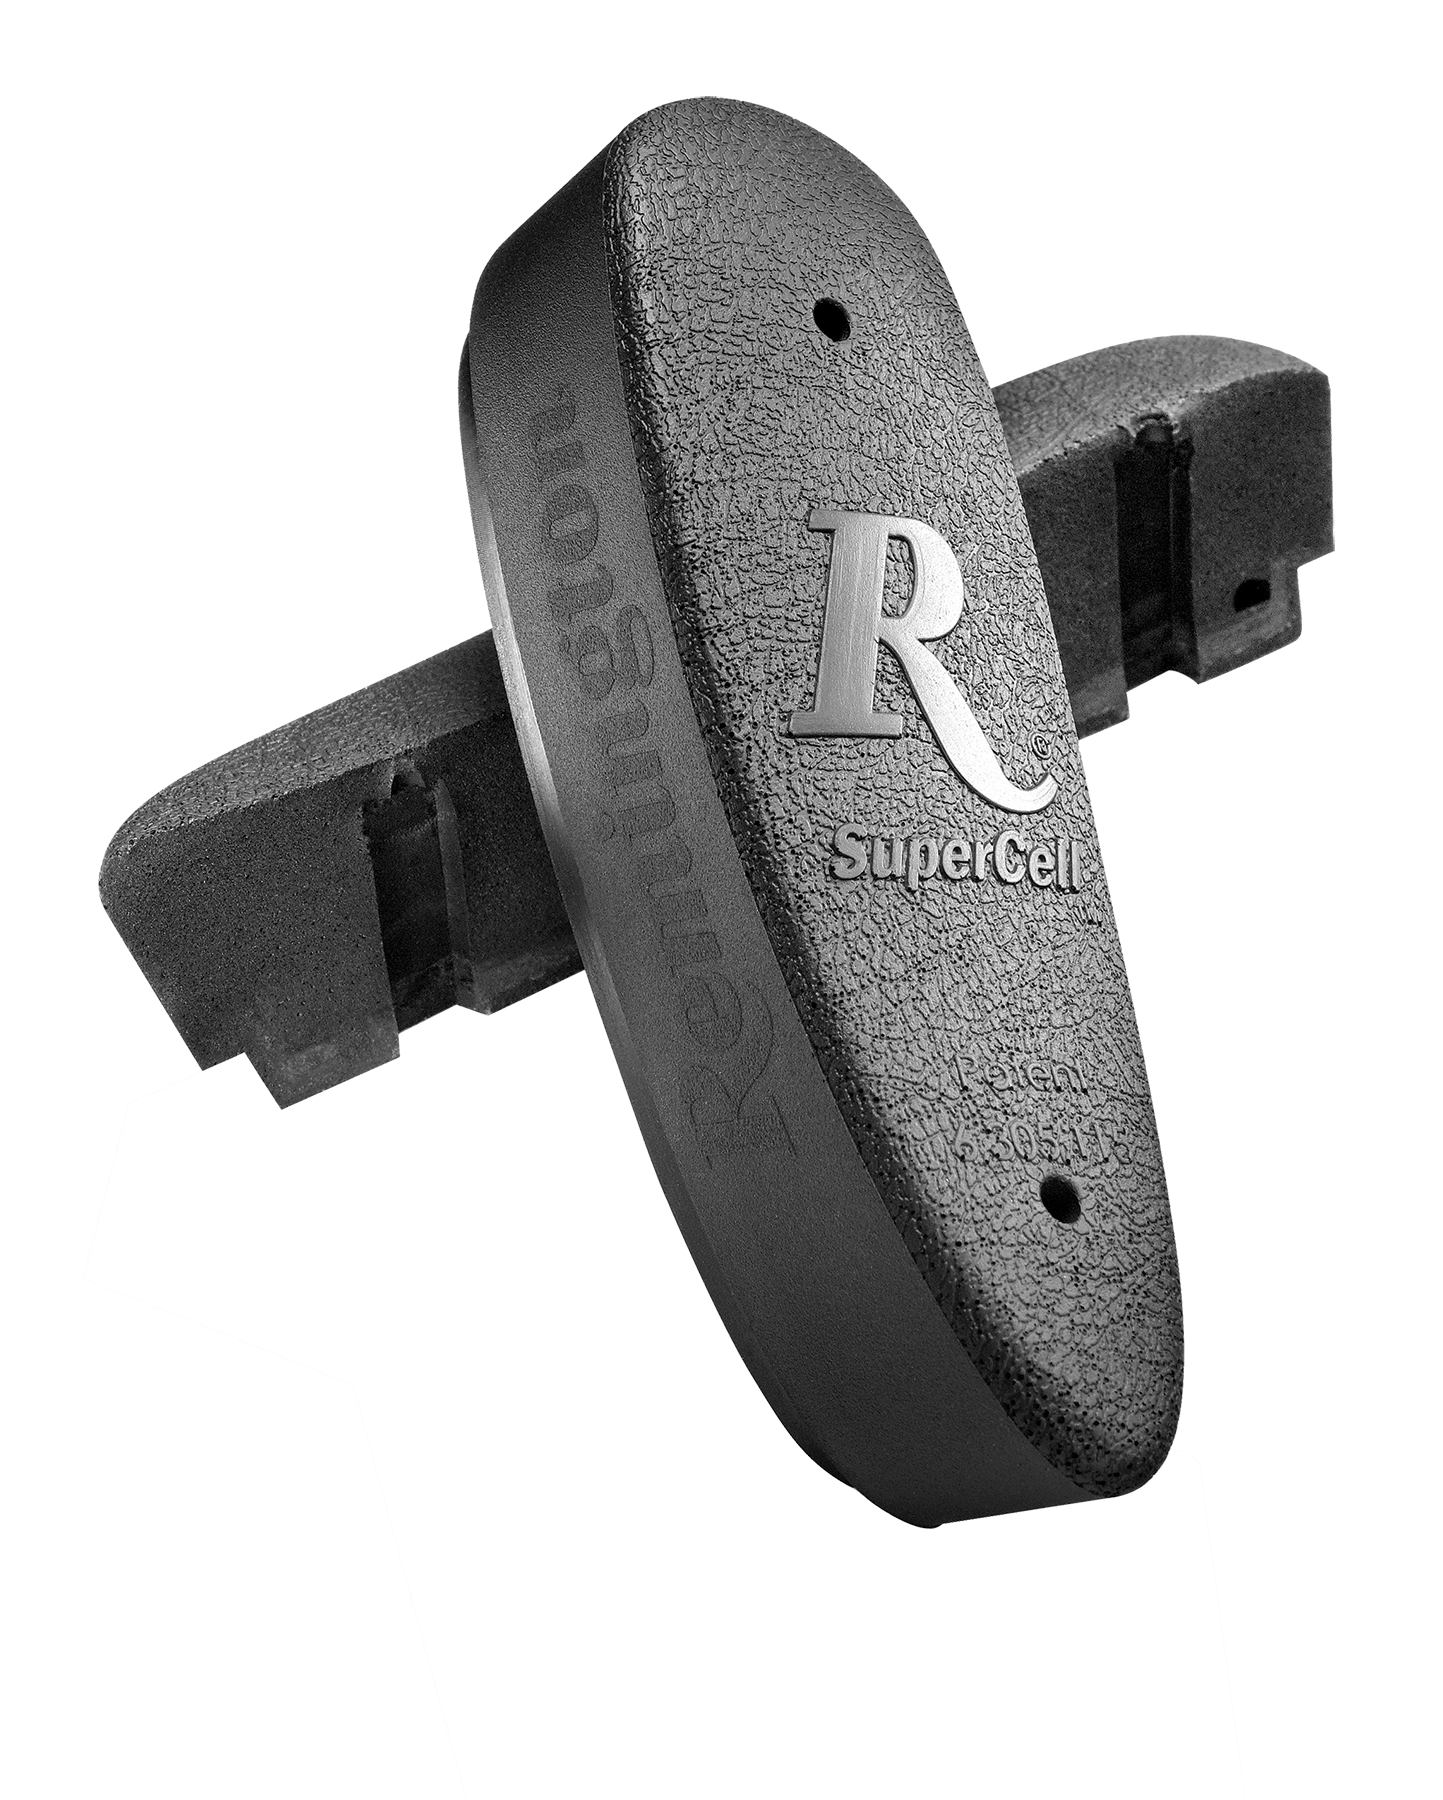 Remington 19471 Supercell Pad Recoil Pad Supercell Brown Wood